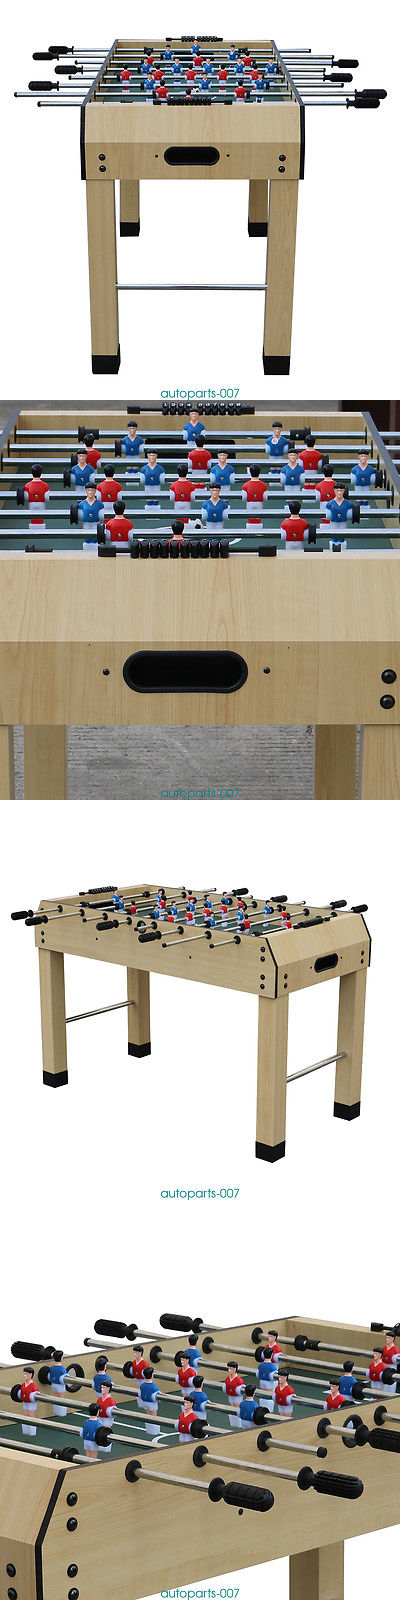 Foosball 36276: 4Ft Foosball Table Football Player Family Table Game Kids  Gift Home Sport